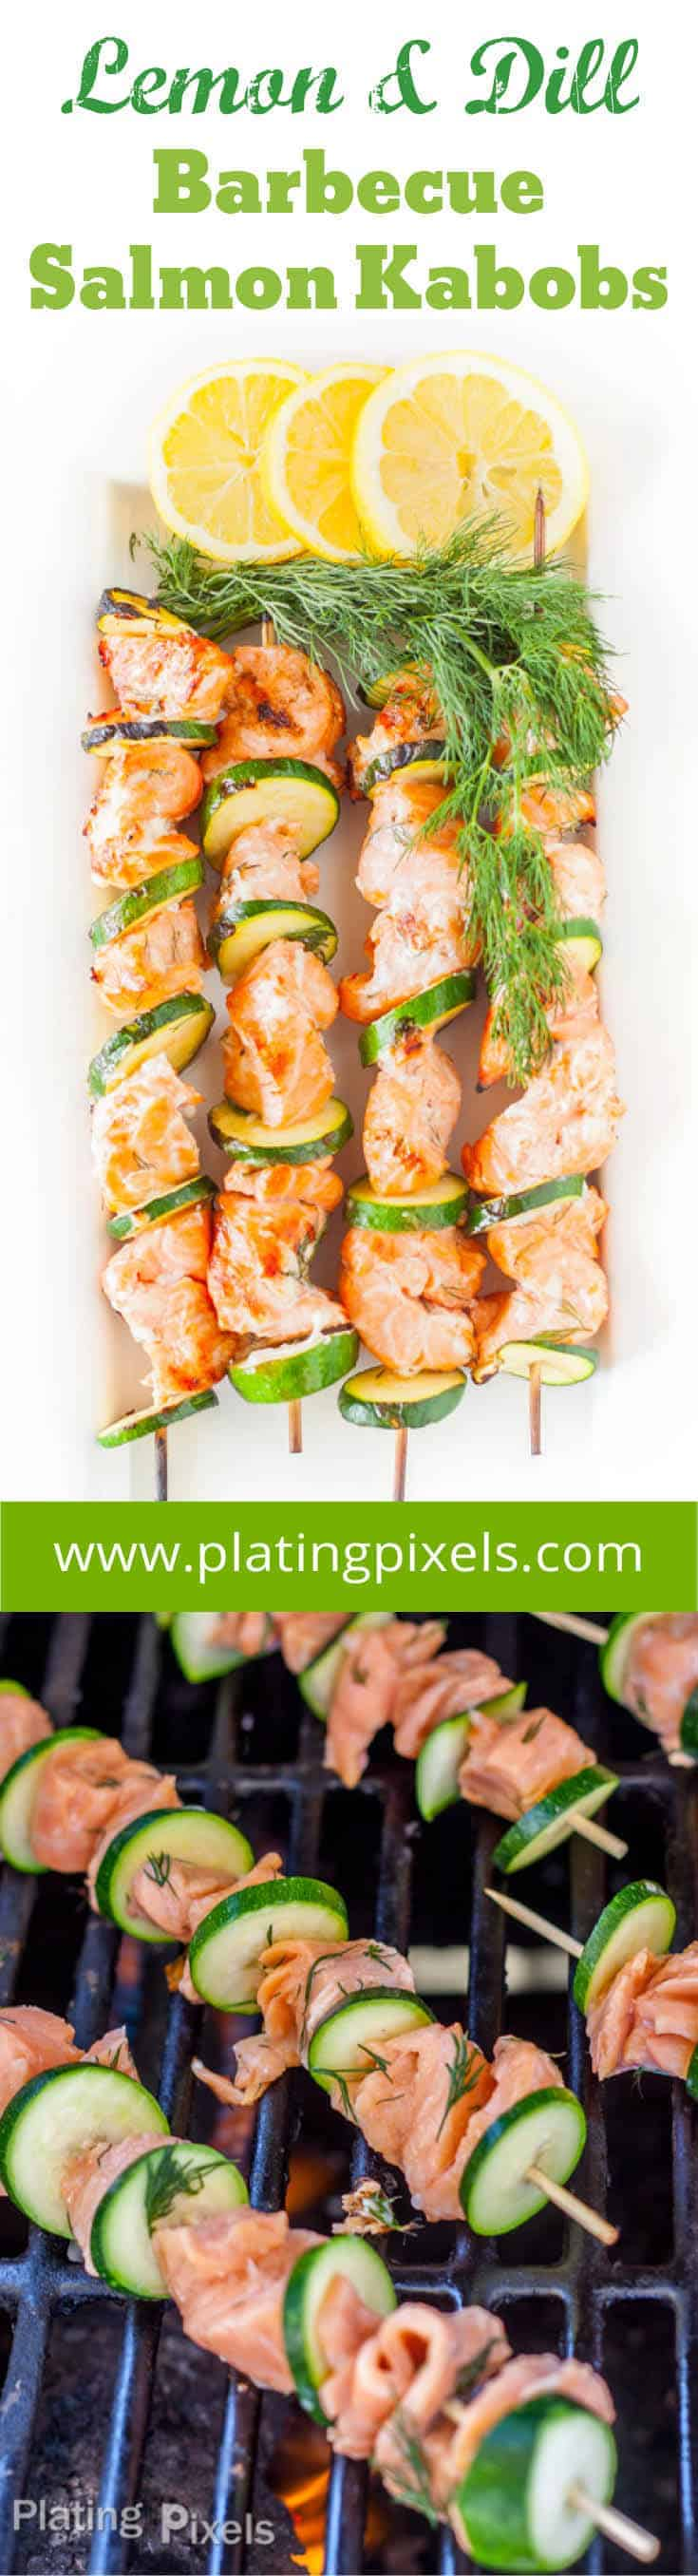 Grilled Salmon Kabobs with Lemon Dill Marinade